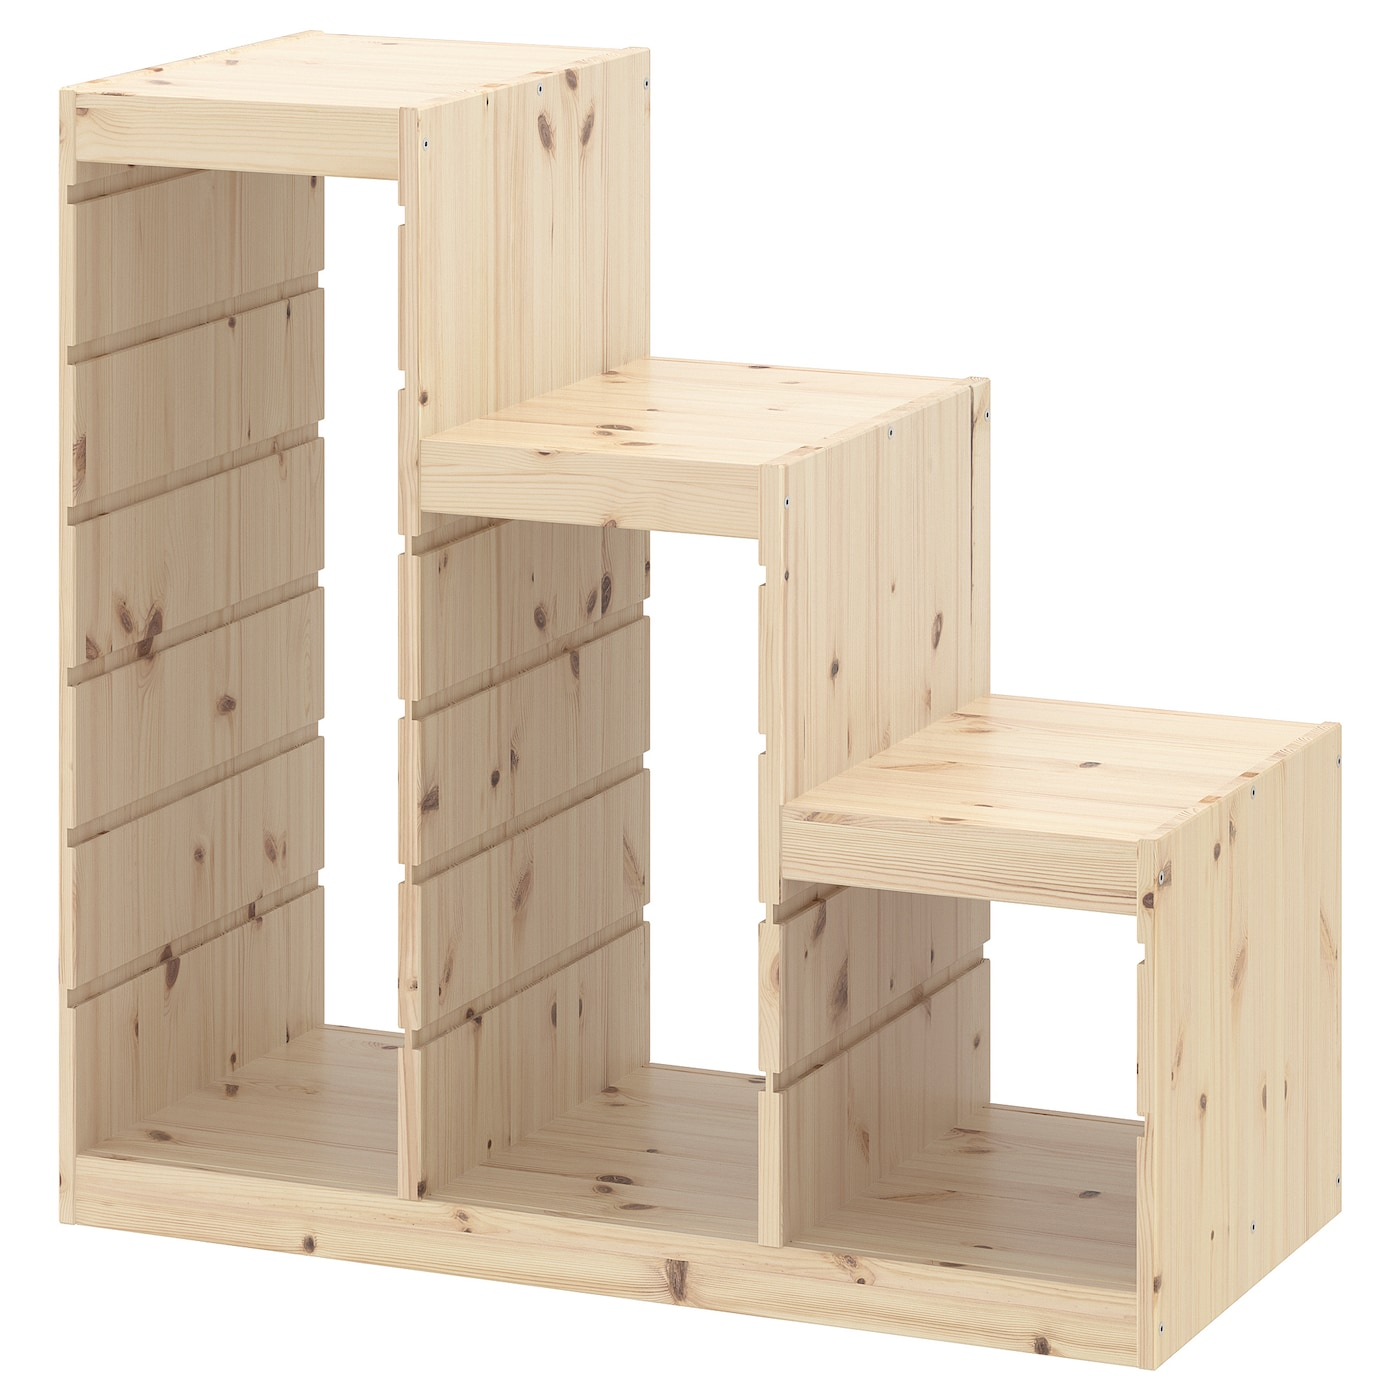 Ikea Trofast Frame Low Storage Makes It Easier For Children To Reach And Organise Their Things